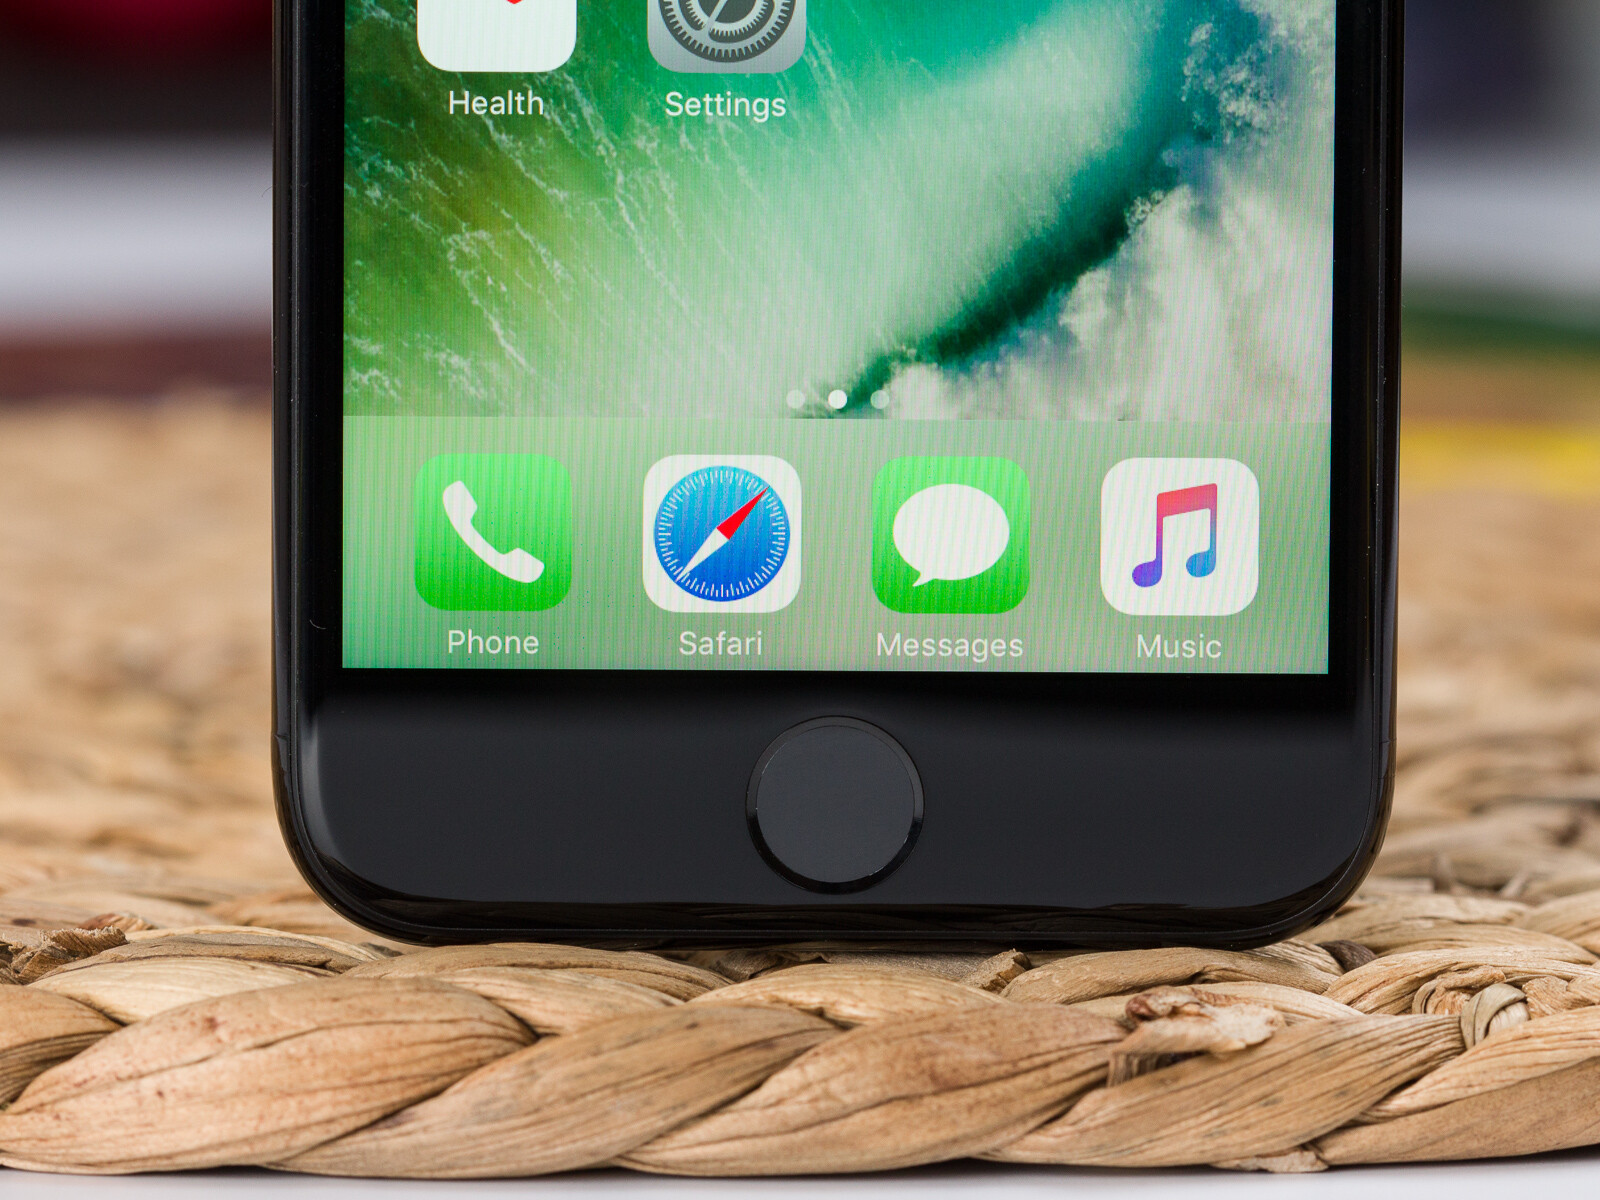 e4de562e76a639 The iPhone 7 in Jet black color - Apple iPhone 7 Review